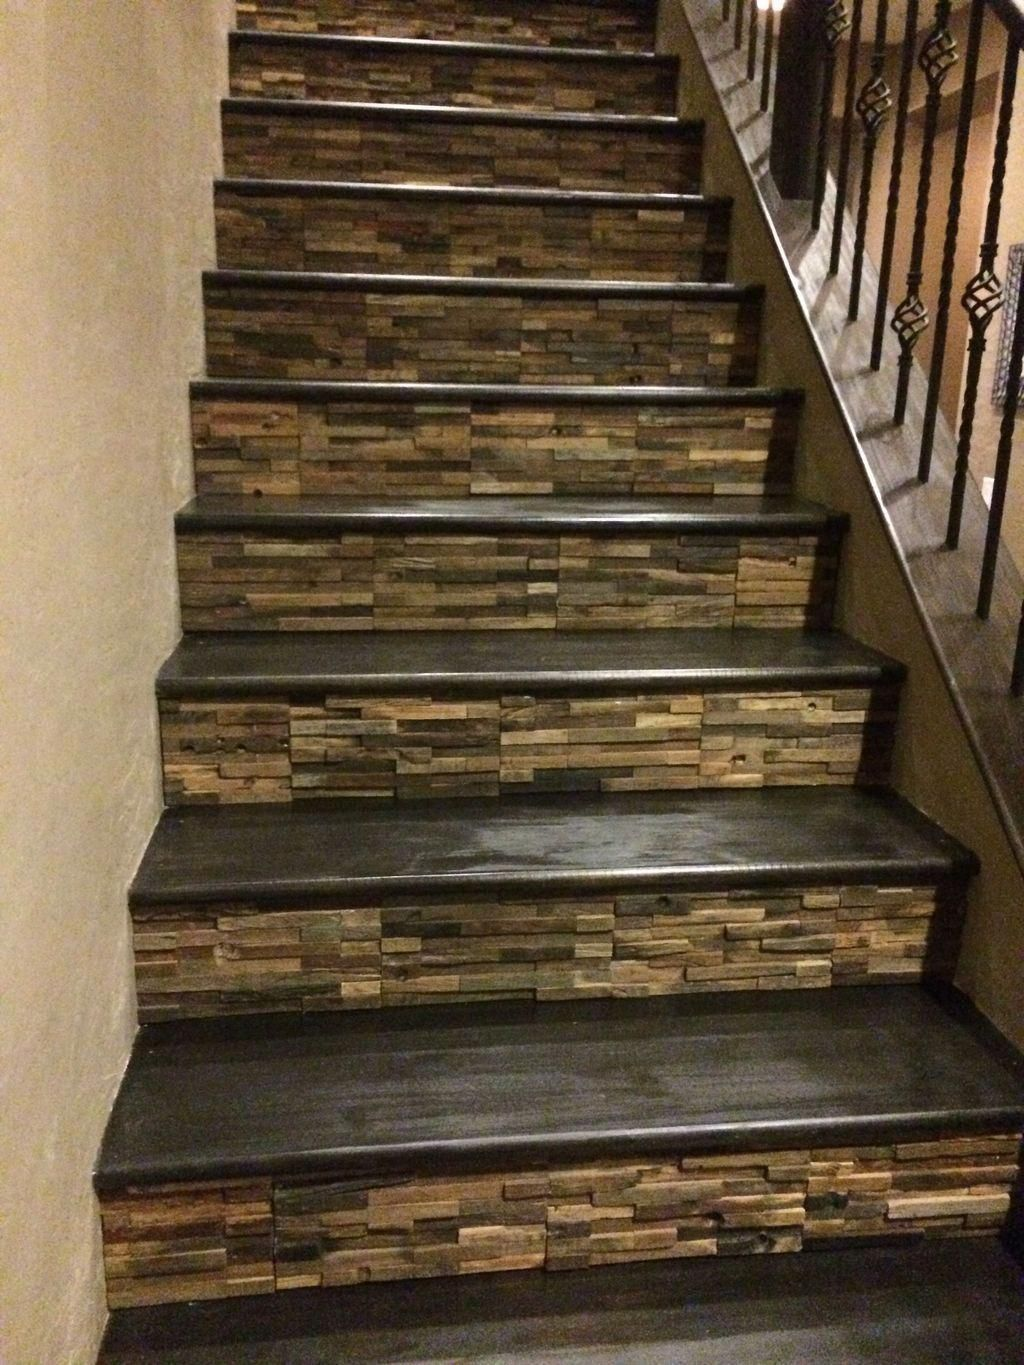 Ask Yourself Why Am I Constructing Something 10 Feet Large If Plywood Is Available In 4 Foot Wide Sheets Tiled Staircase Stairs Design Staircase Remodel